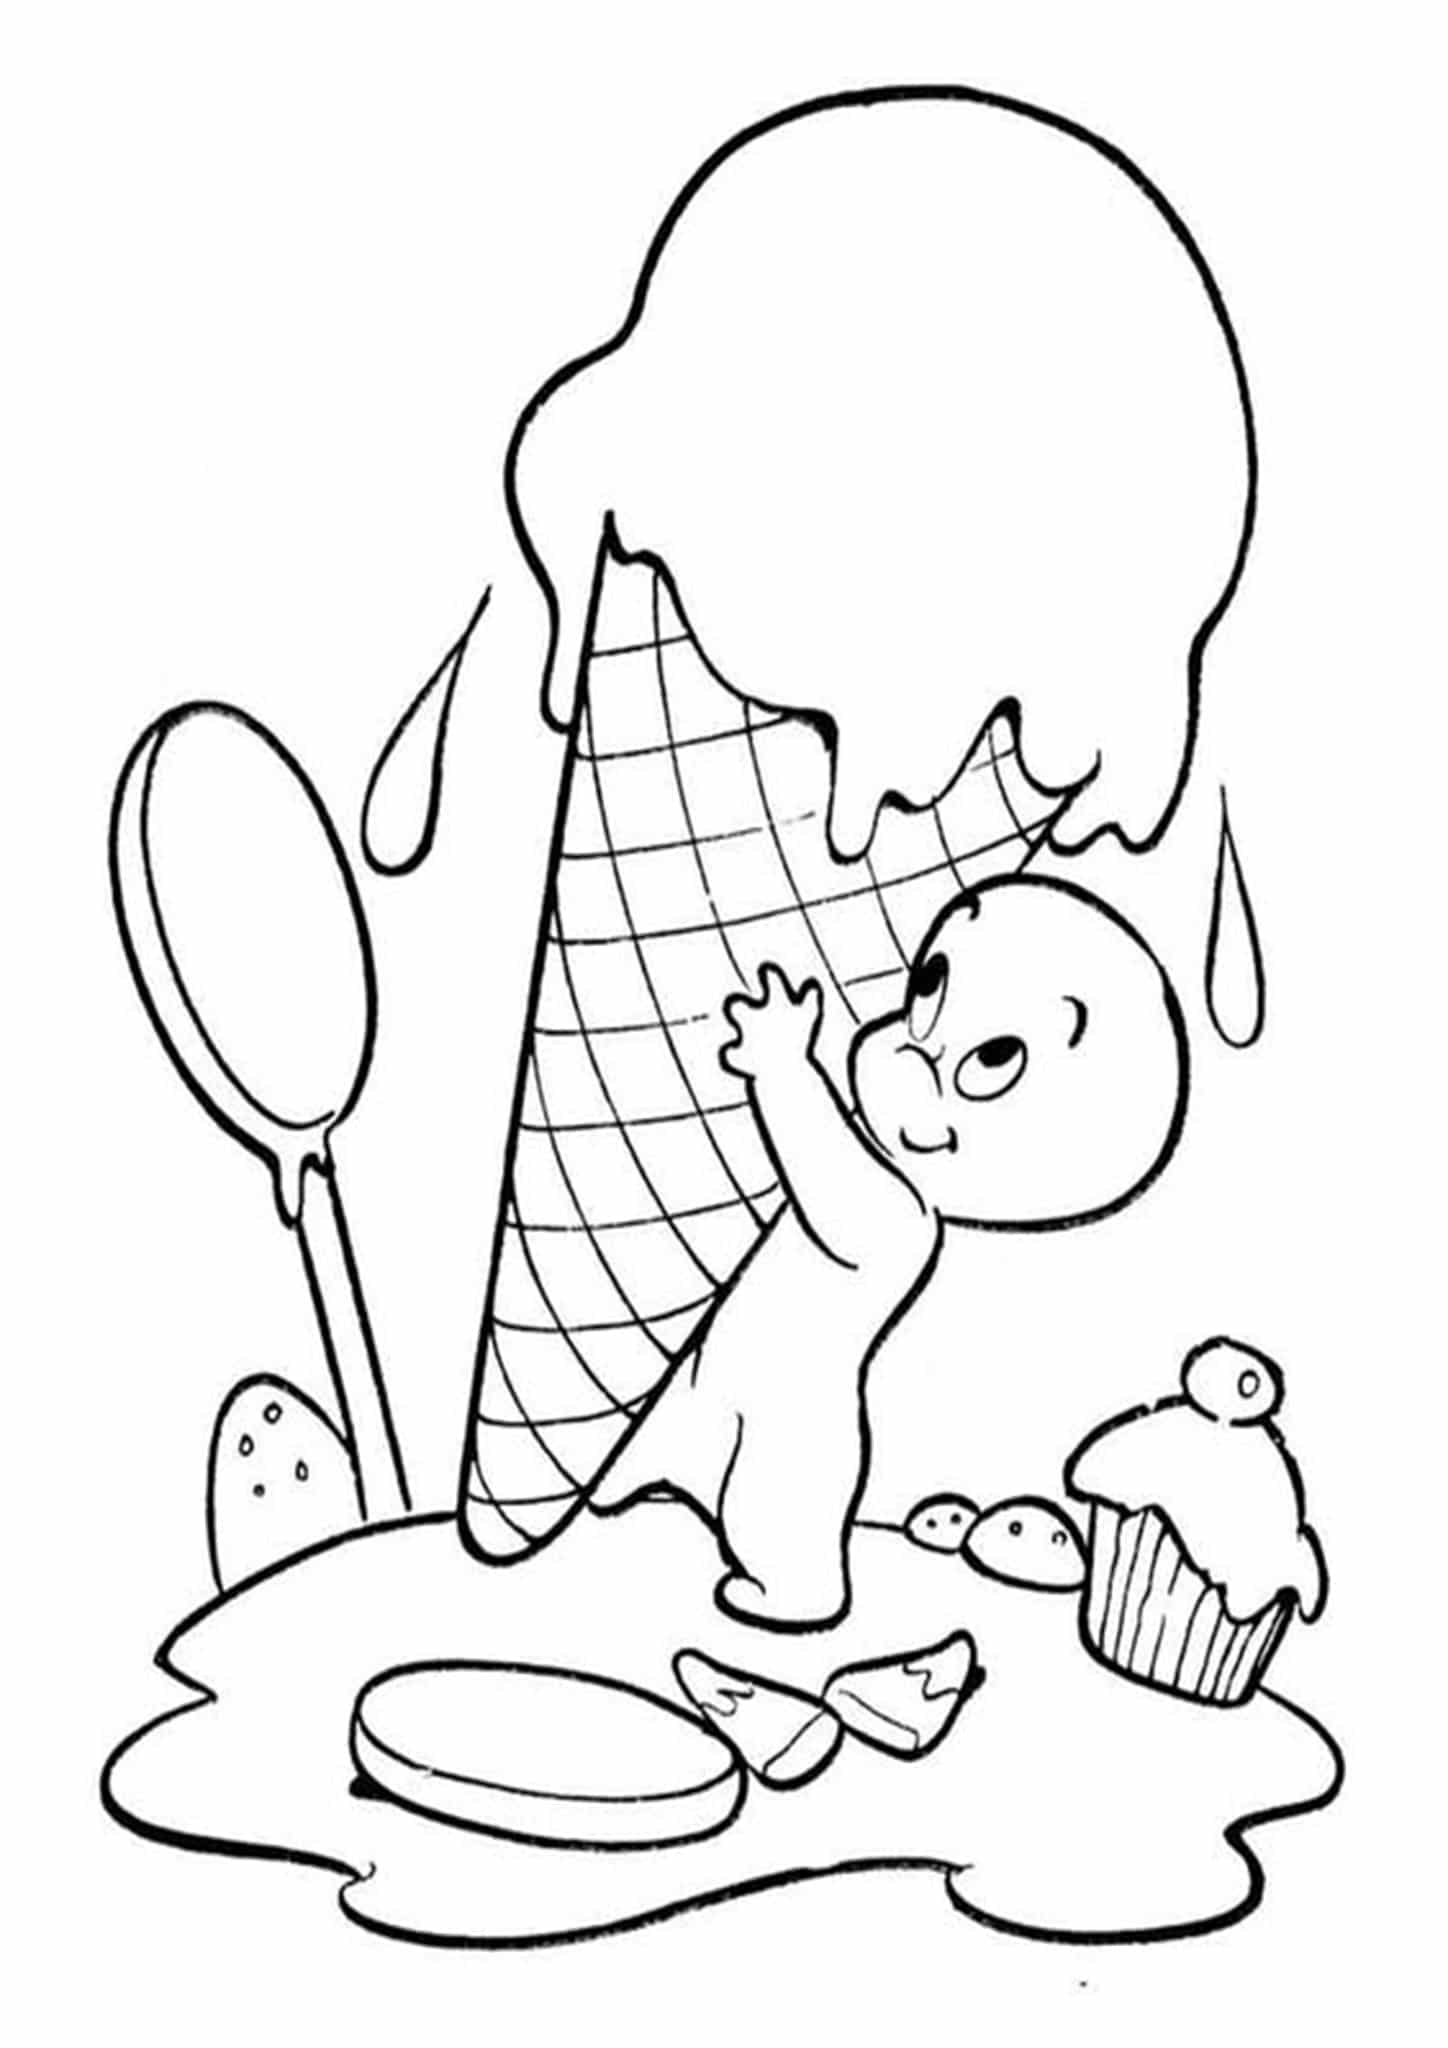 coloring ice cream pages free easy to print ice cream coloring pages tulamama cream ice pages coloring